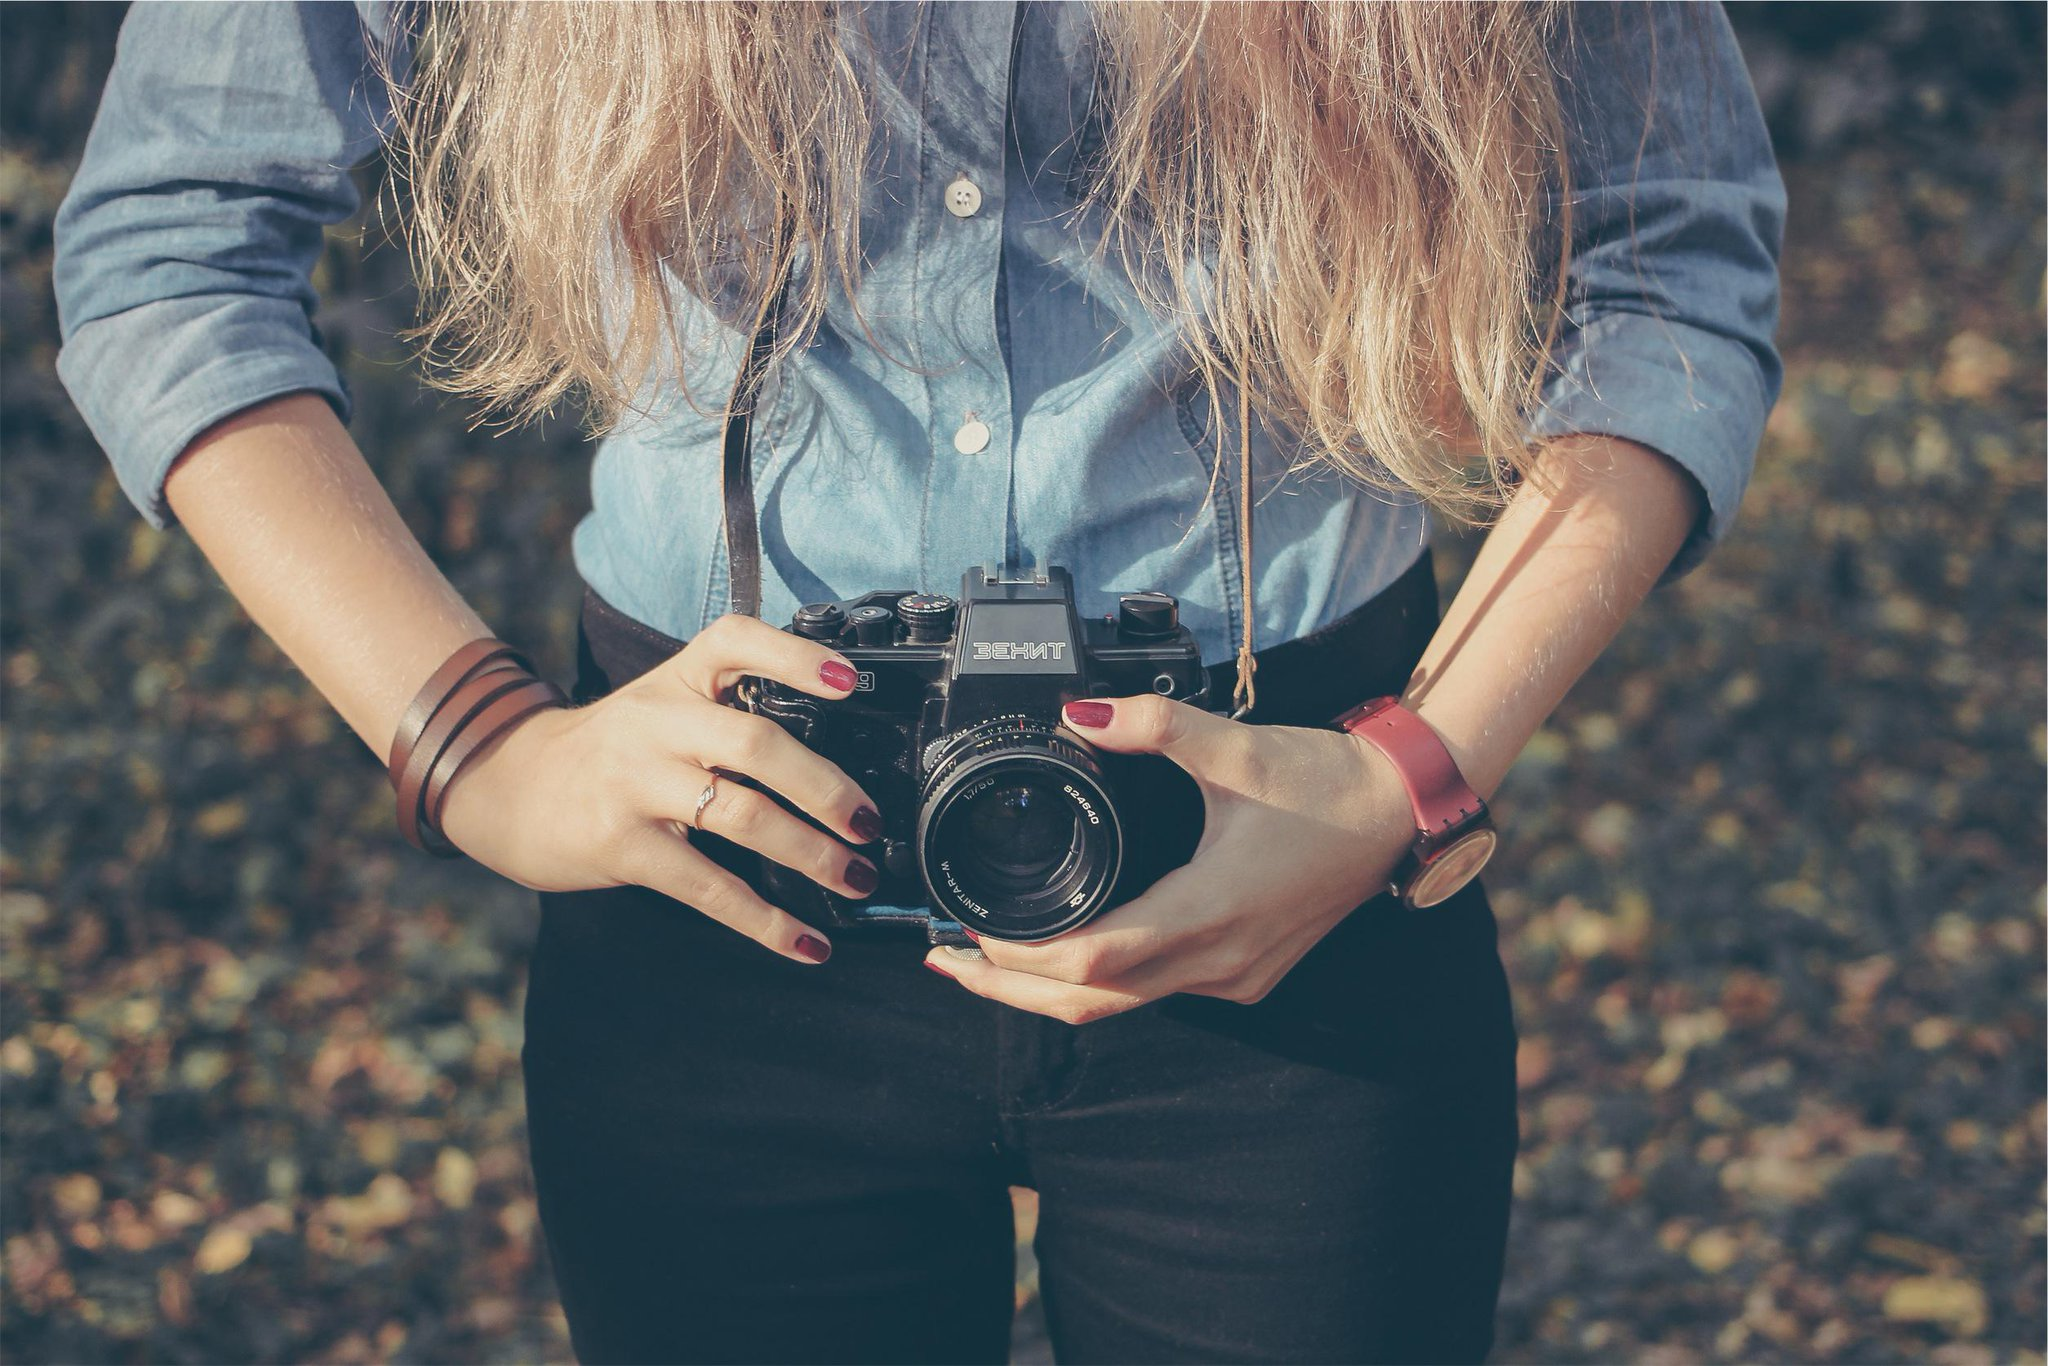 RT @hootsuite: Want a picture perfect Instagram presence? These 12 tools will help: http://t.co/3vANqQ47nX http://t.co/OOk3deDNBP